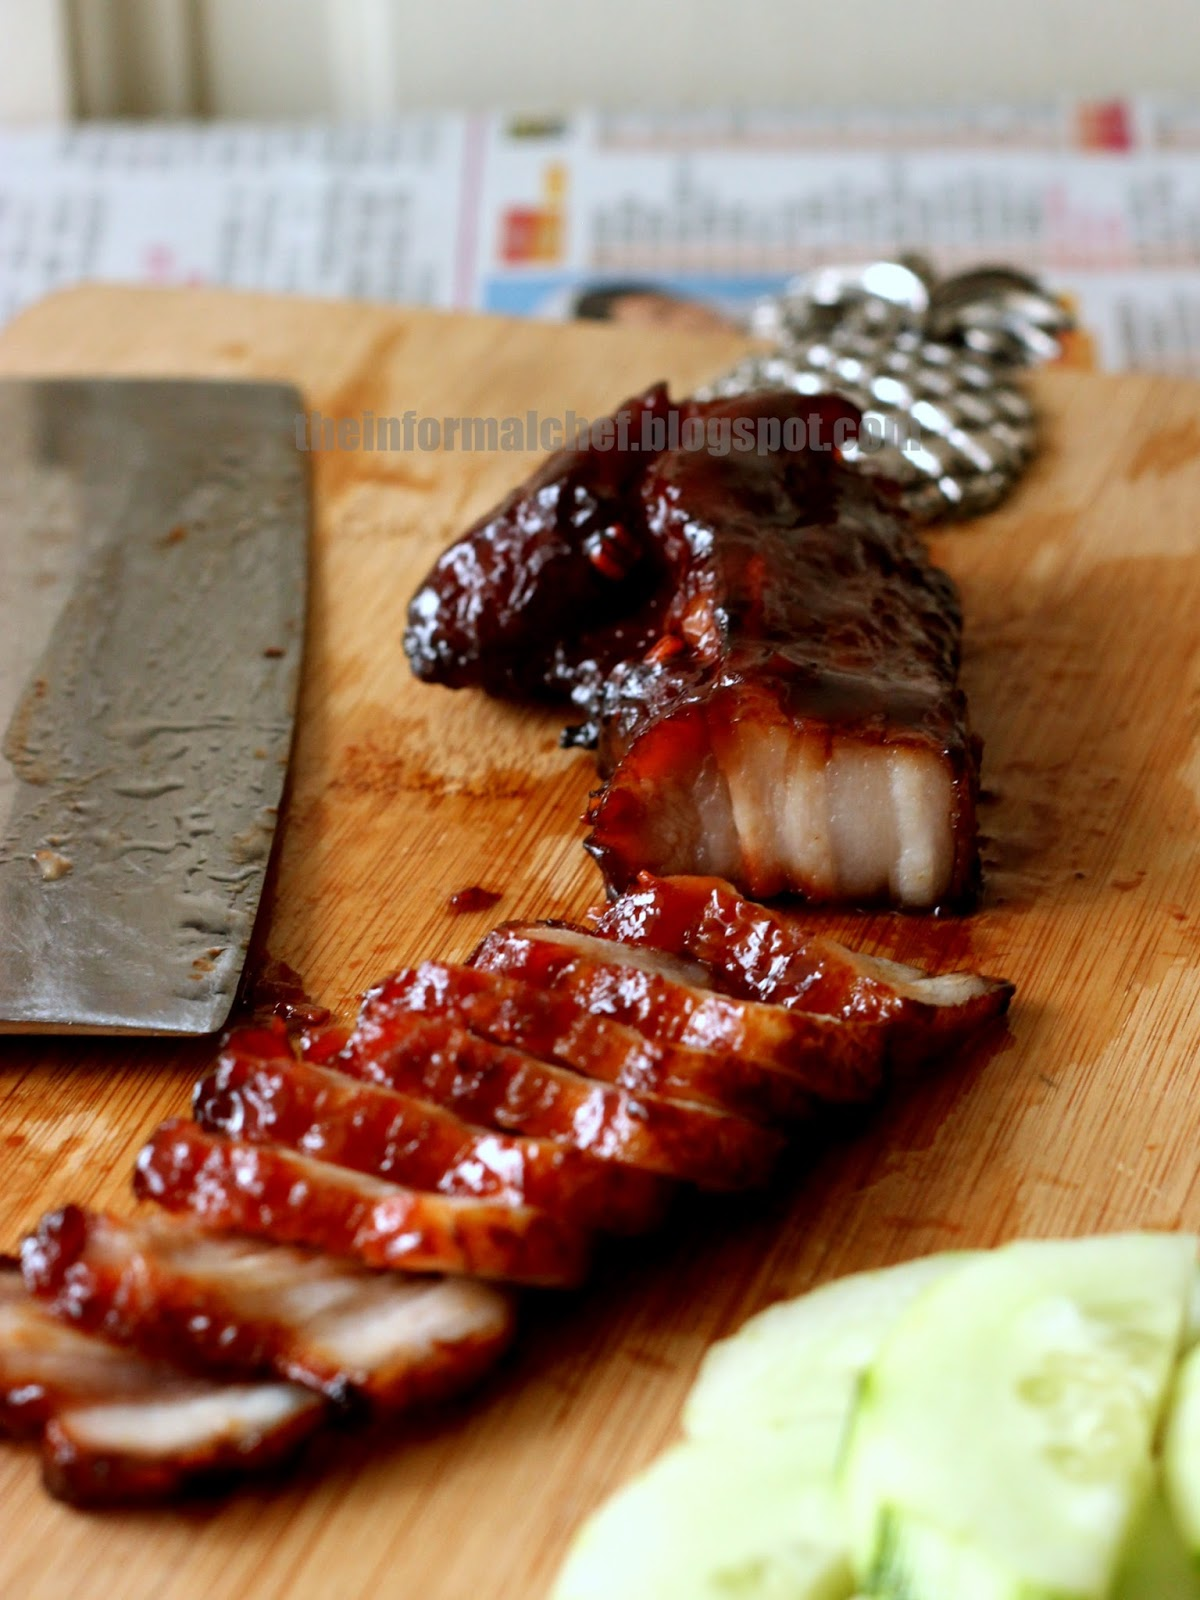 The informal chef recipe for chinese bbq porkchar siu recipe for chinese bbq porkchar siu forumfinder Choice Image